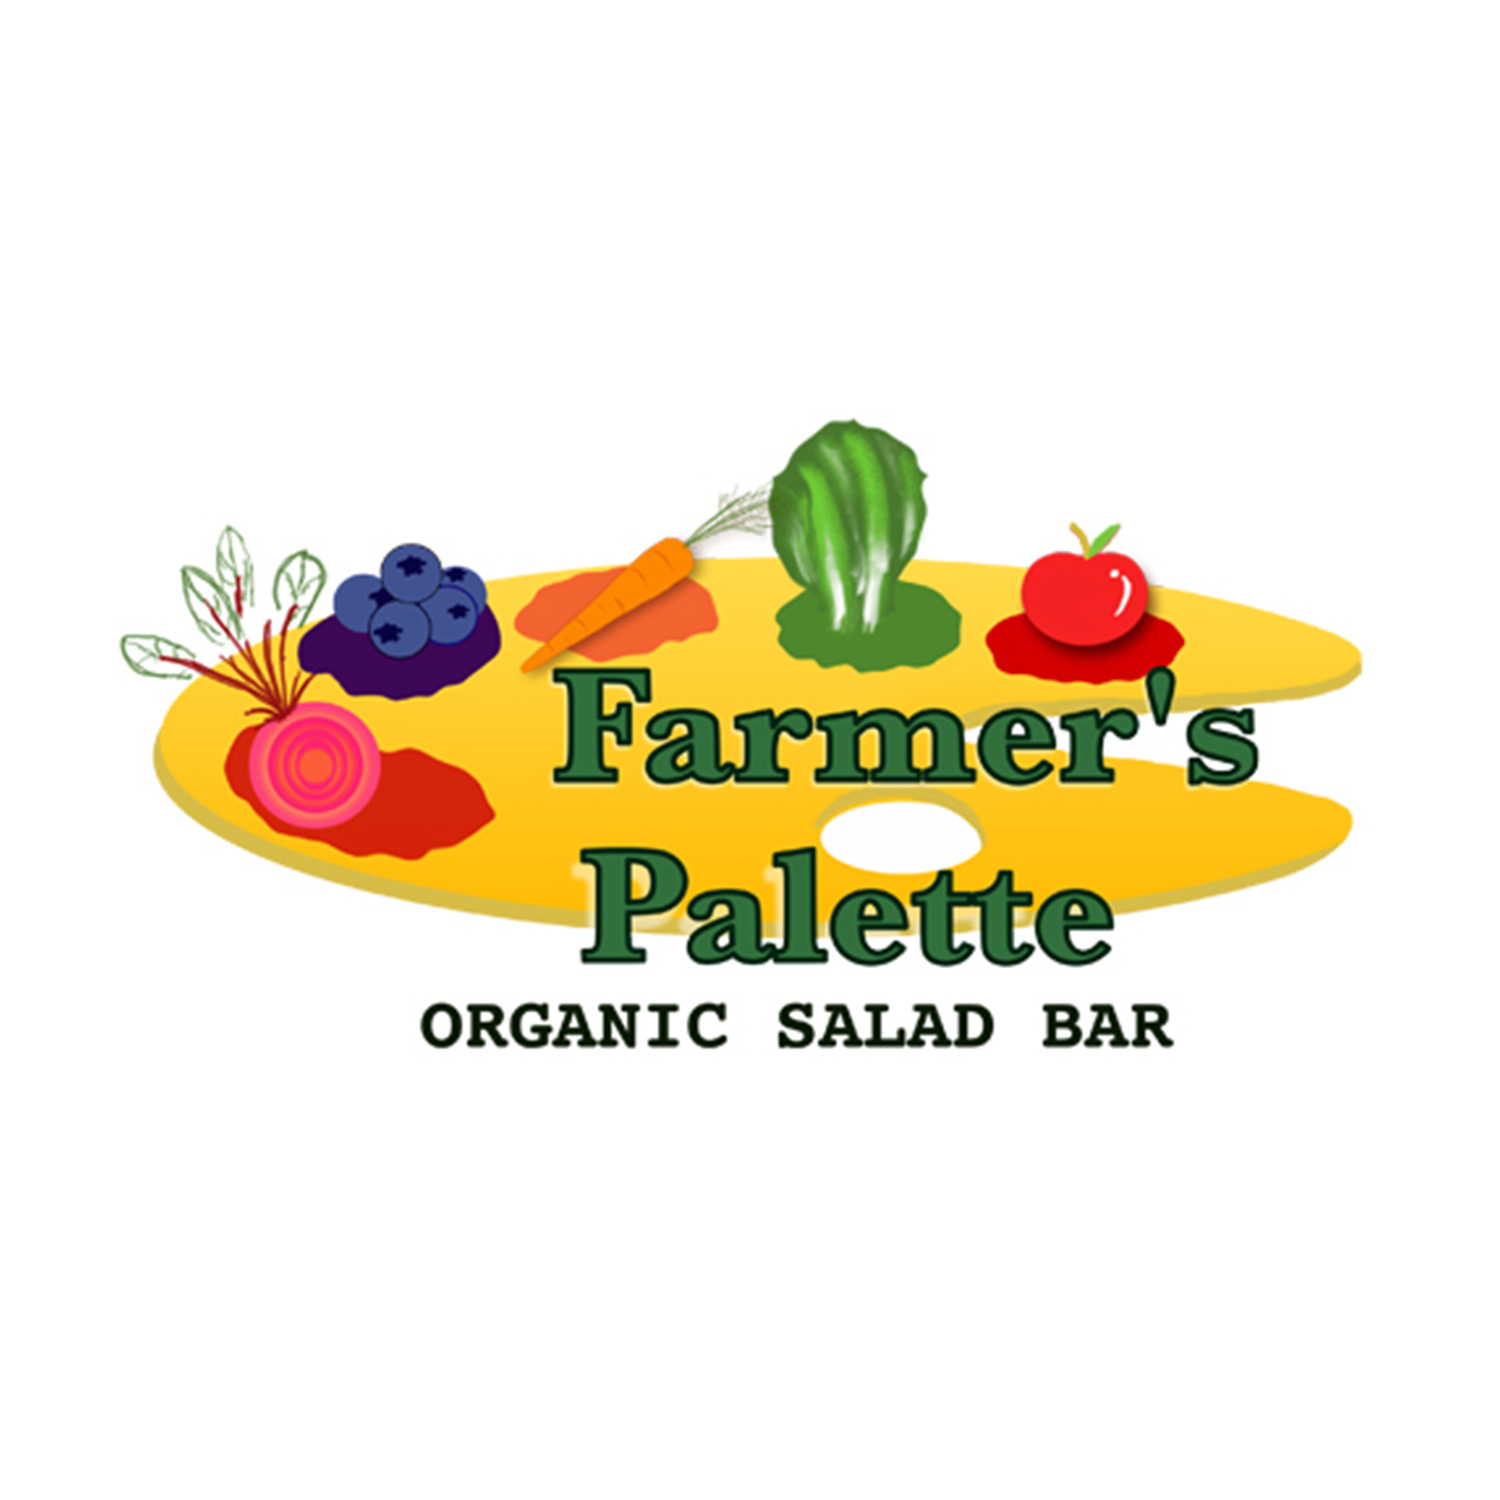 Farmer's Palette : Stamford Connecticut's Top Delivery Only Organic Salad Bar operating out of Flavorism